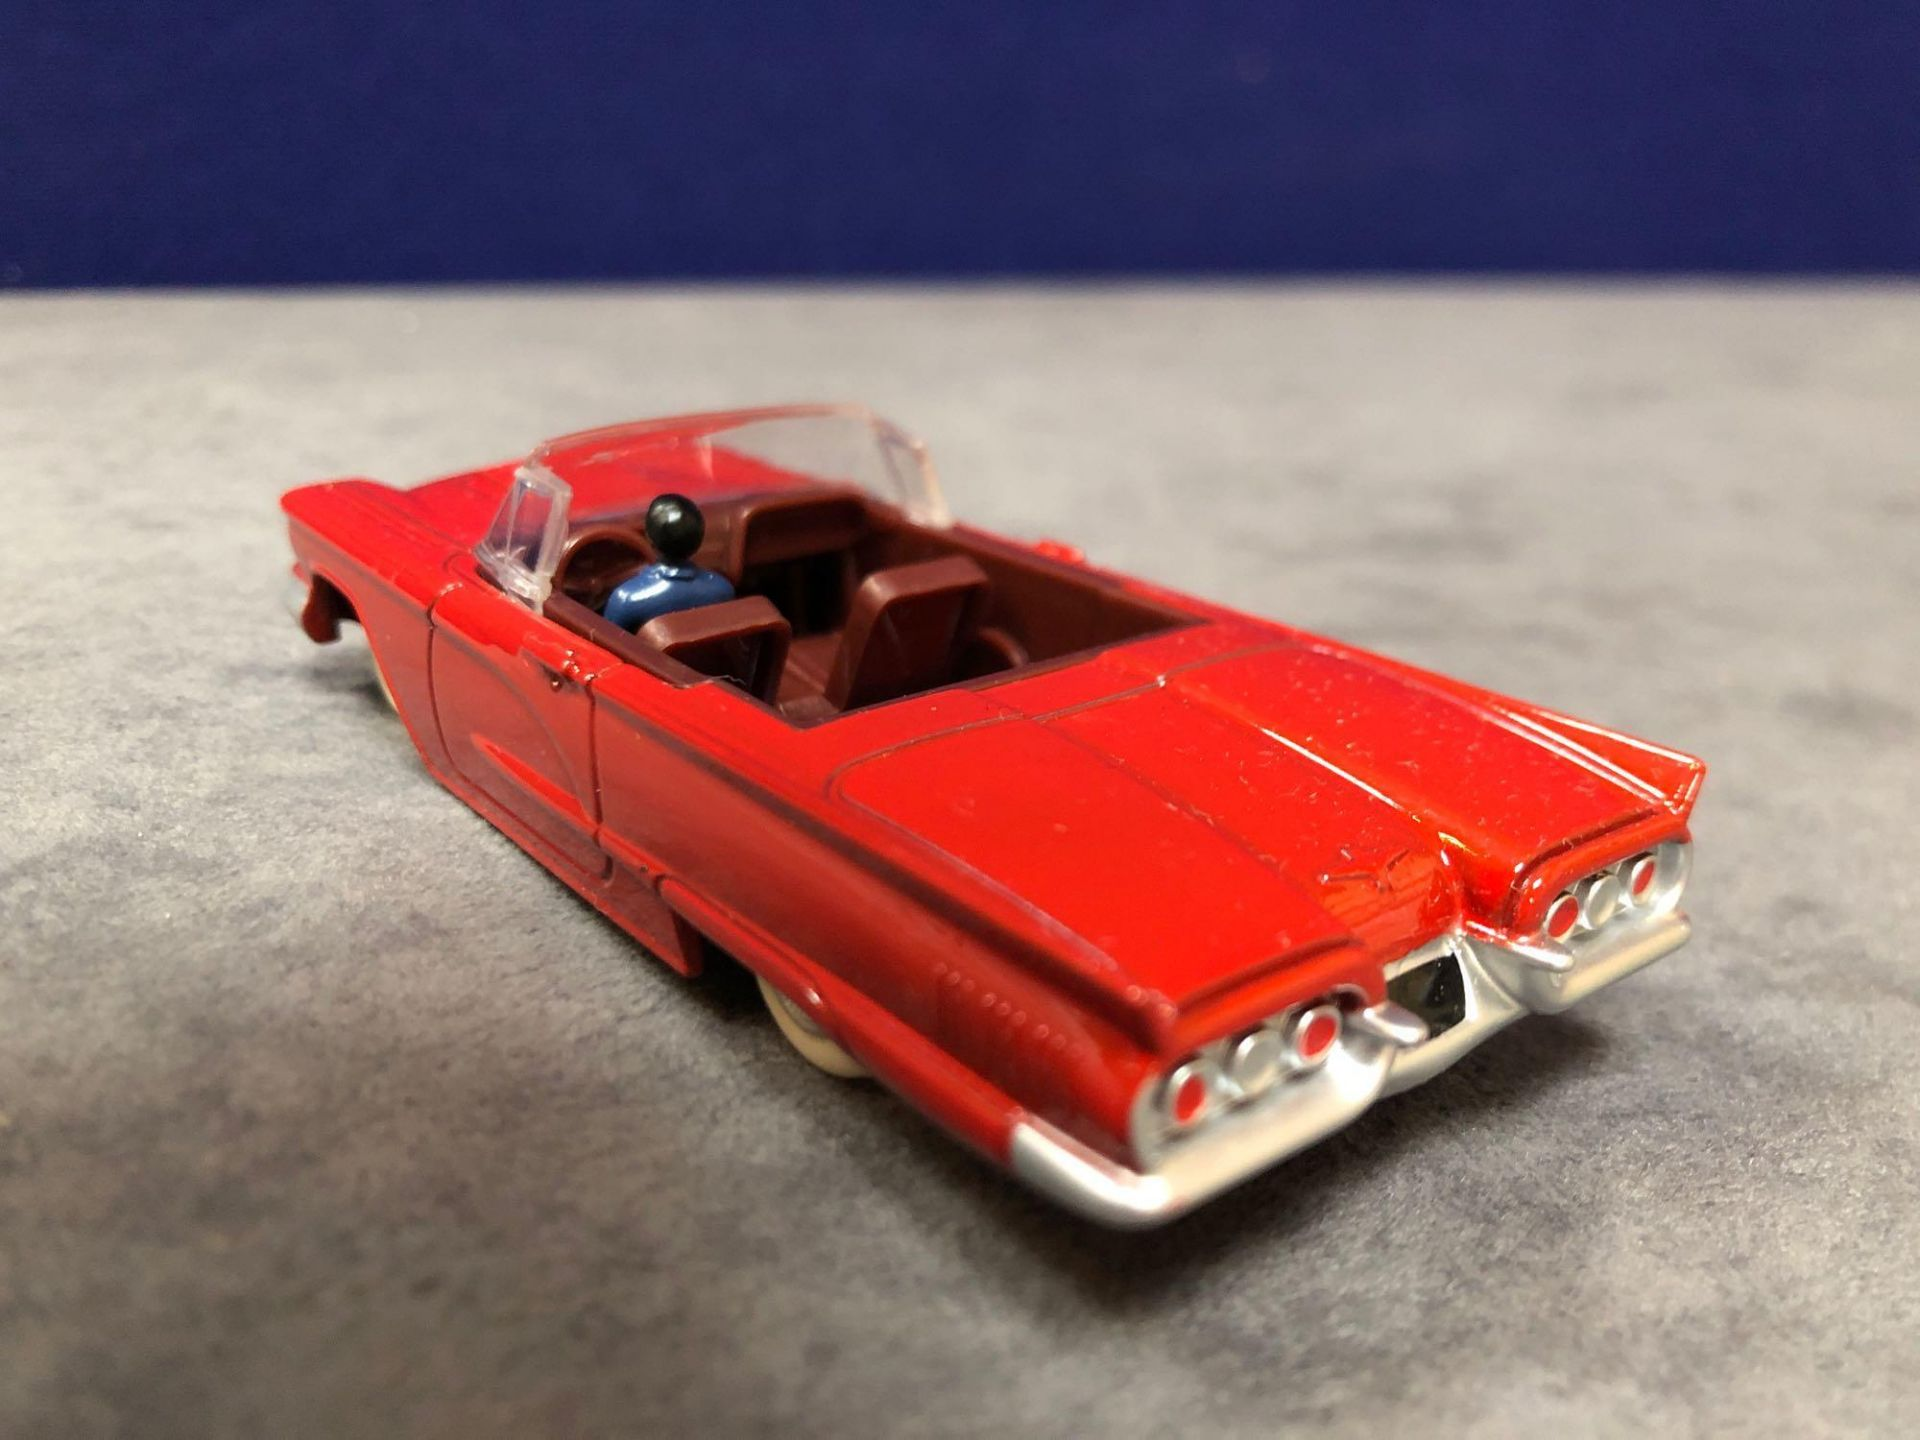 Dinky (Norev Edition)Diecast #555 Ford Thunderbird In Red mint in box - Image 3 of 3